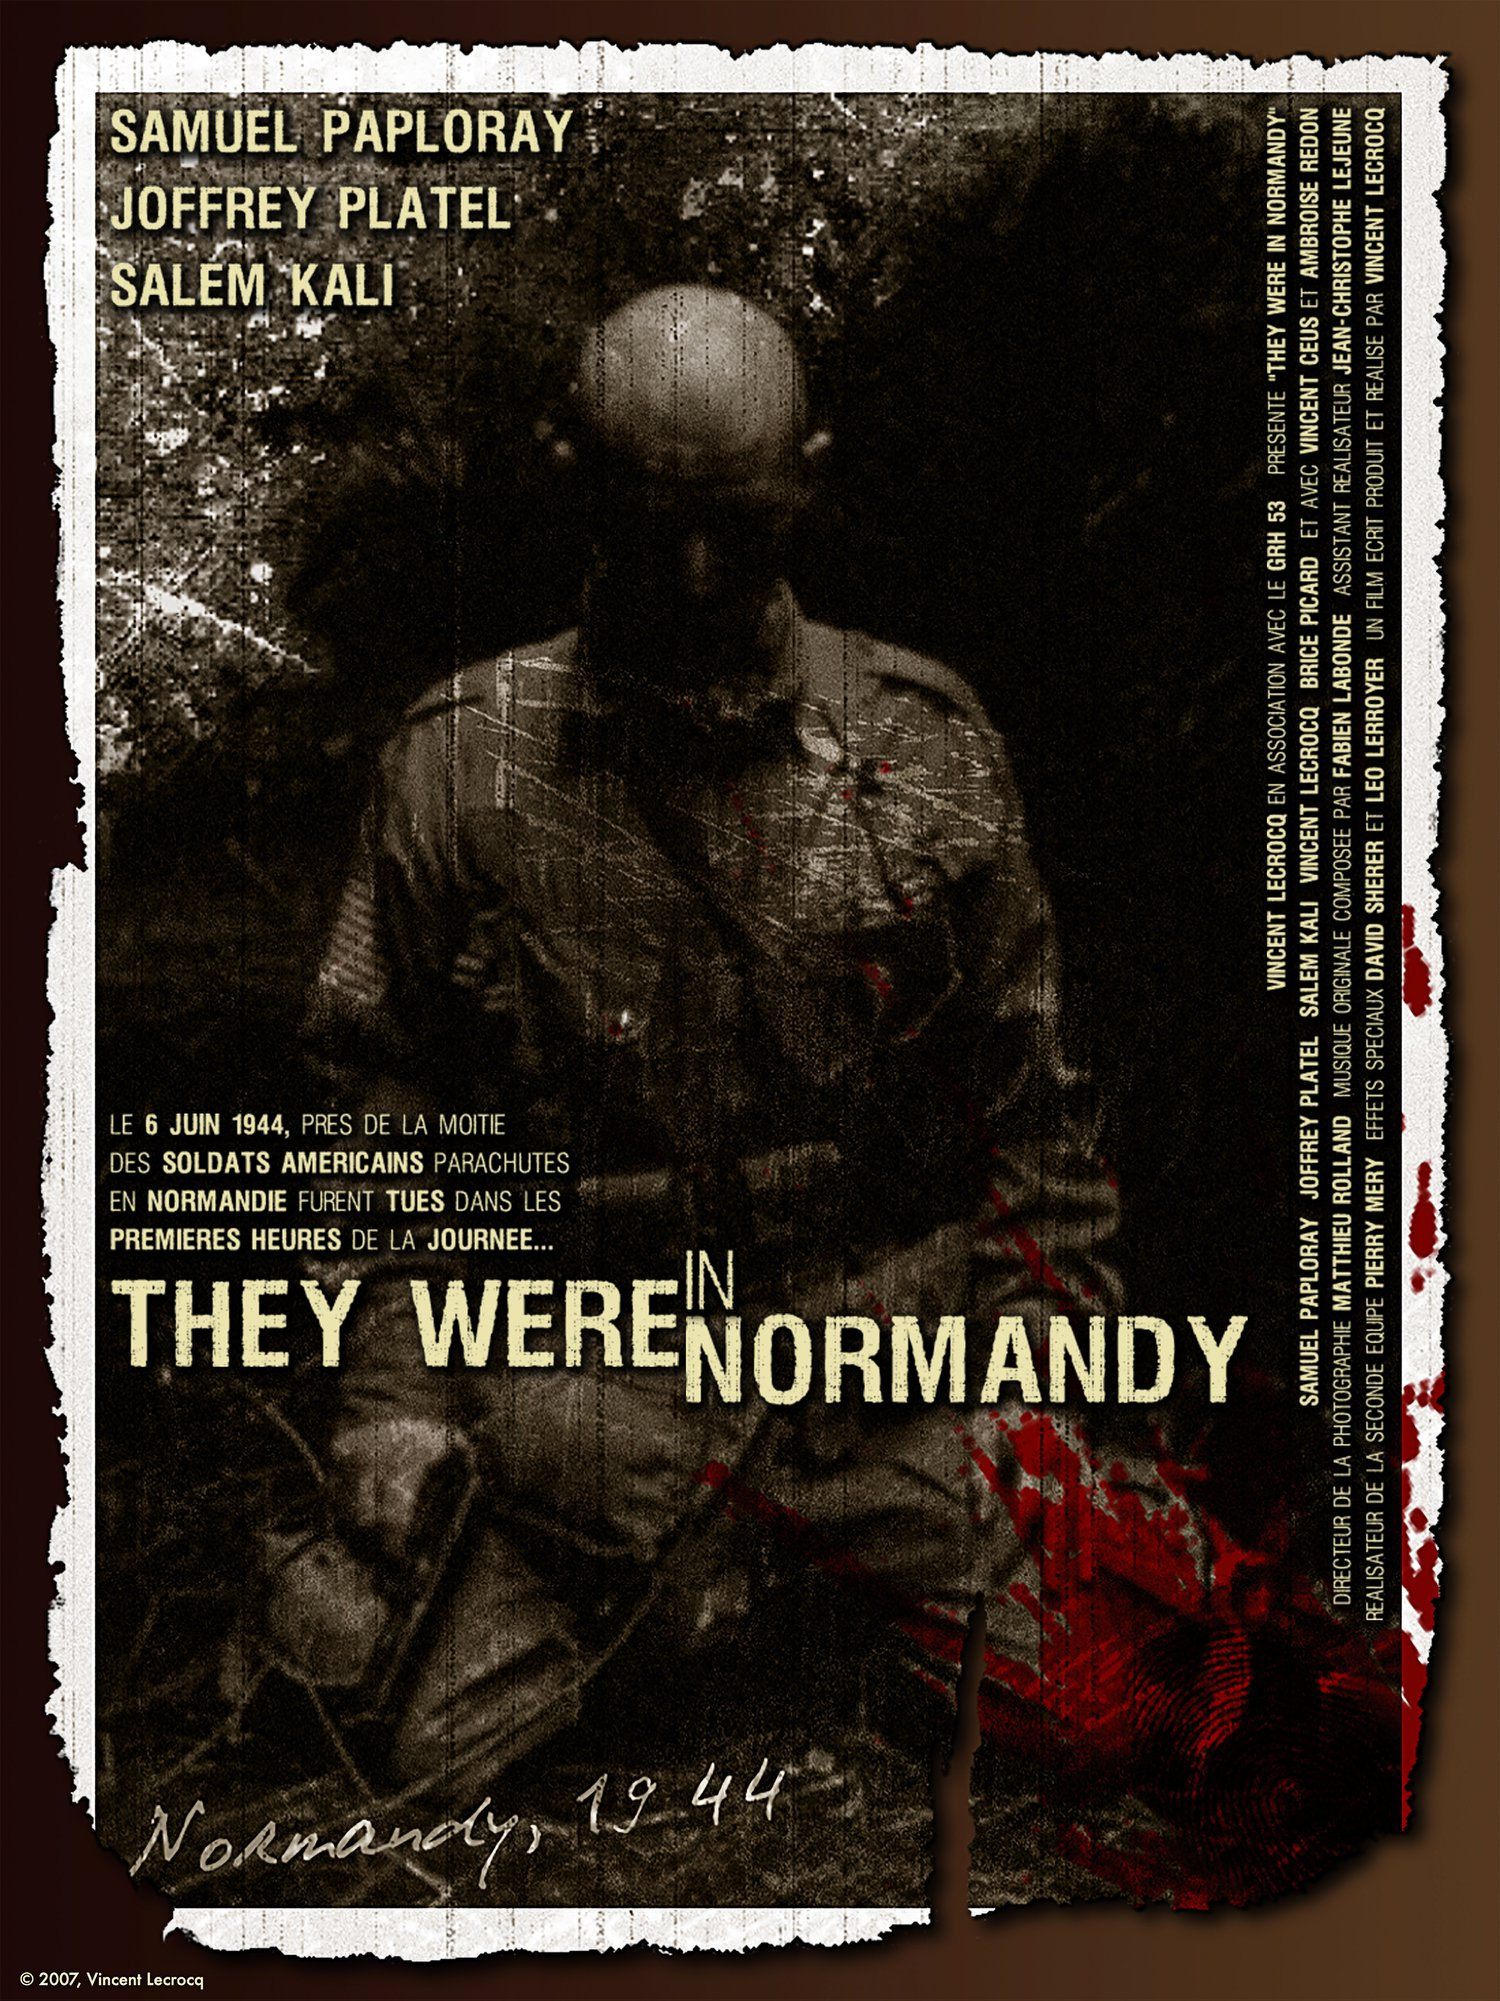 They were in Normandy - Official Poster - 2007